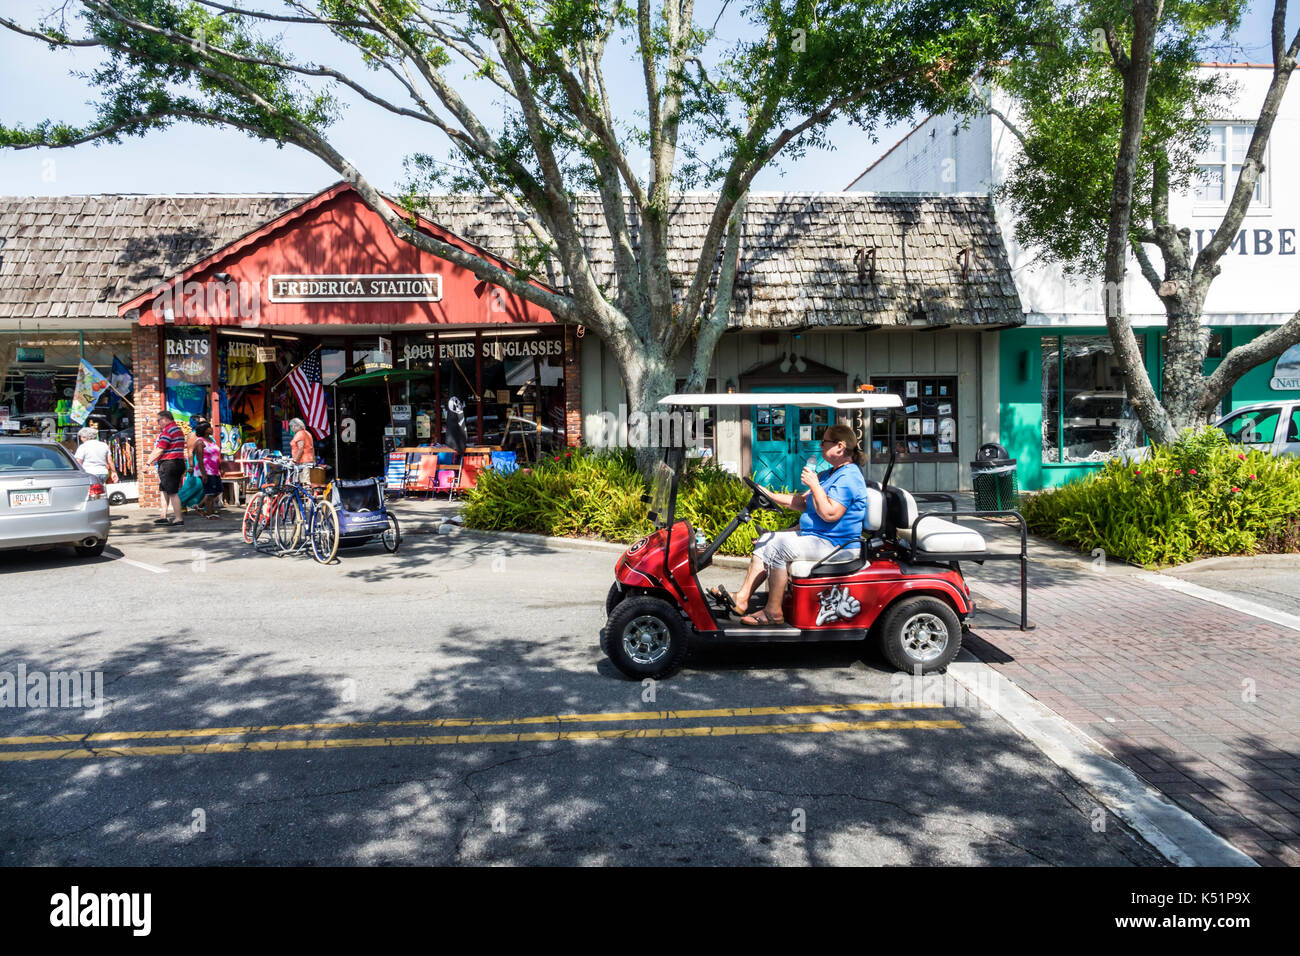 St. Saint Simons Island Georgia Pier Village District shopping stores Frederica Station exterior golf cart woman - Stock Image